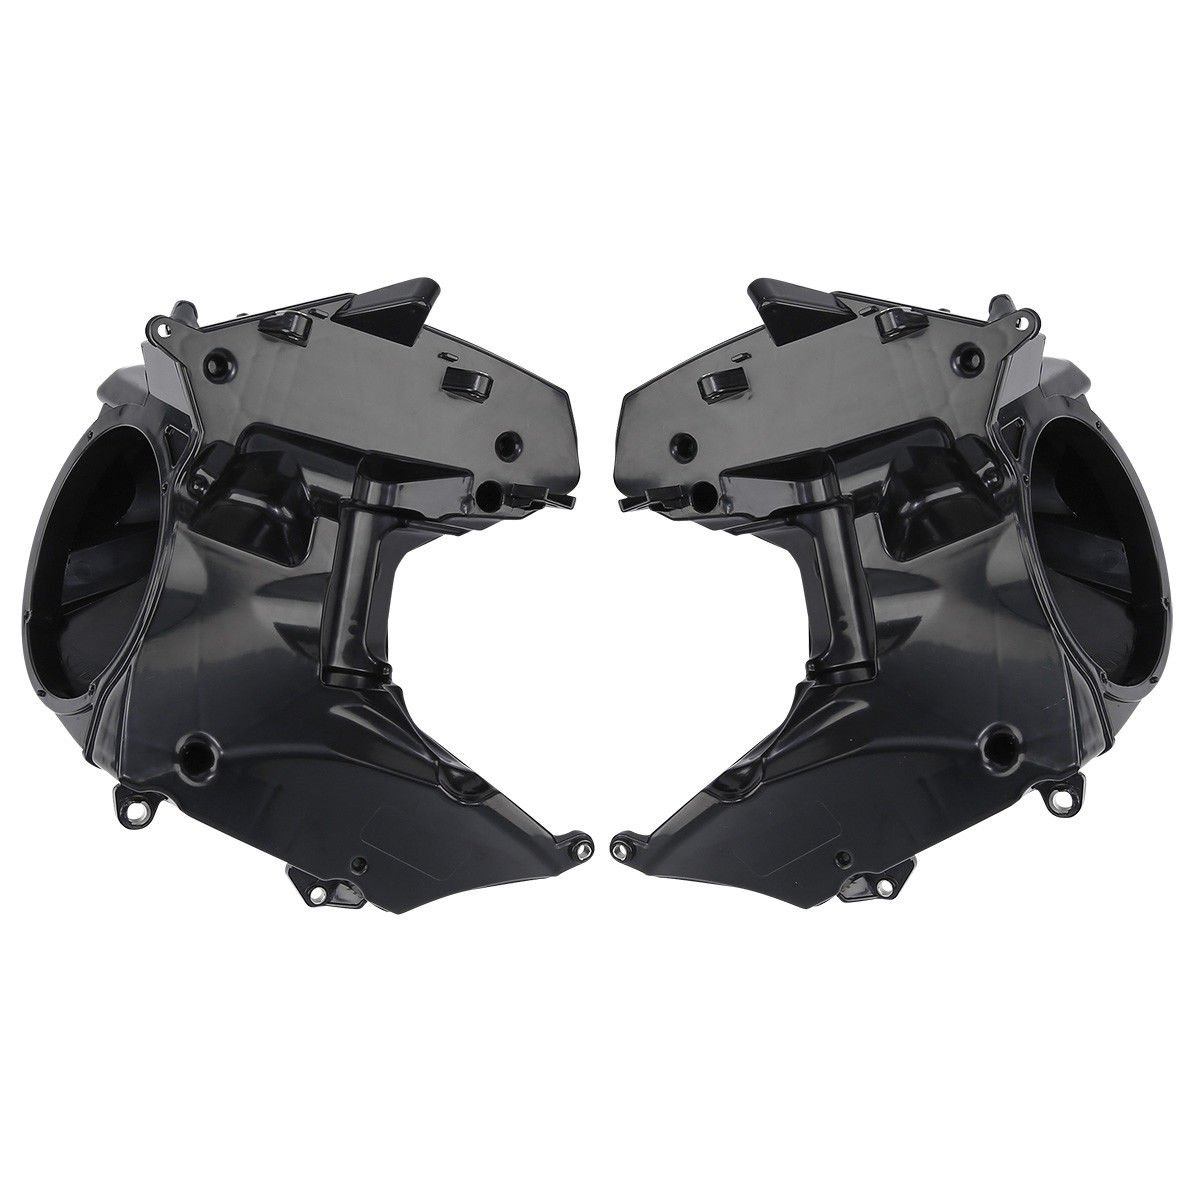 XFMT ABS Inner Fairing Speaker Boxes Covers Compatible with Harley Road Glide FLTRX Special FLTRXS CVO Ultra FLTRUSE 2015-2018 2016 2017